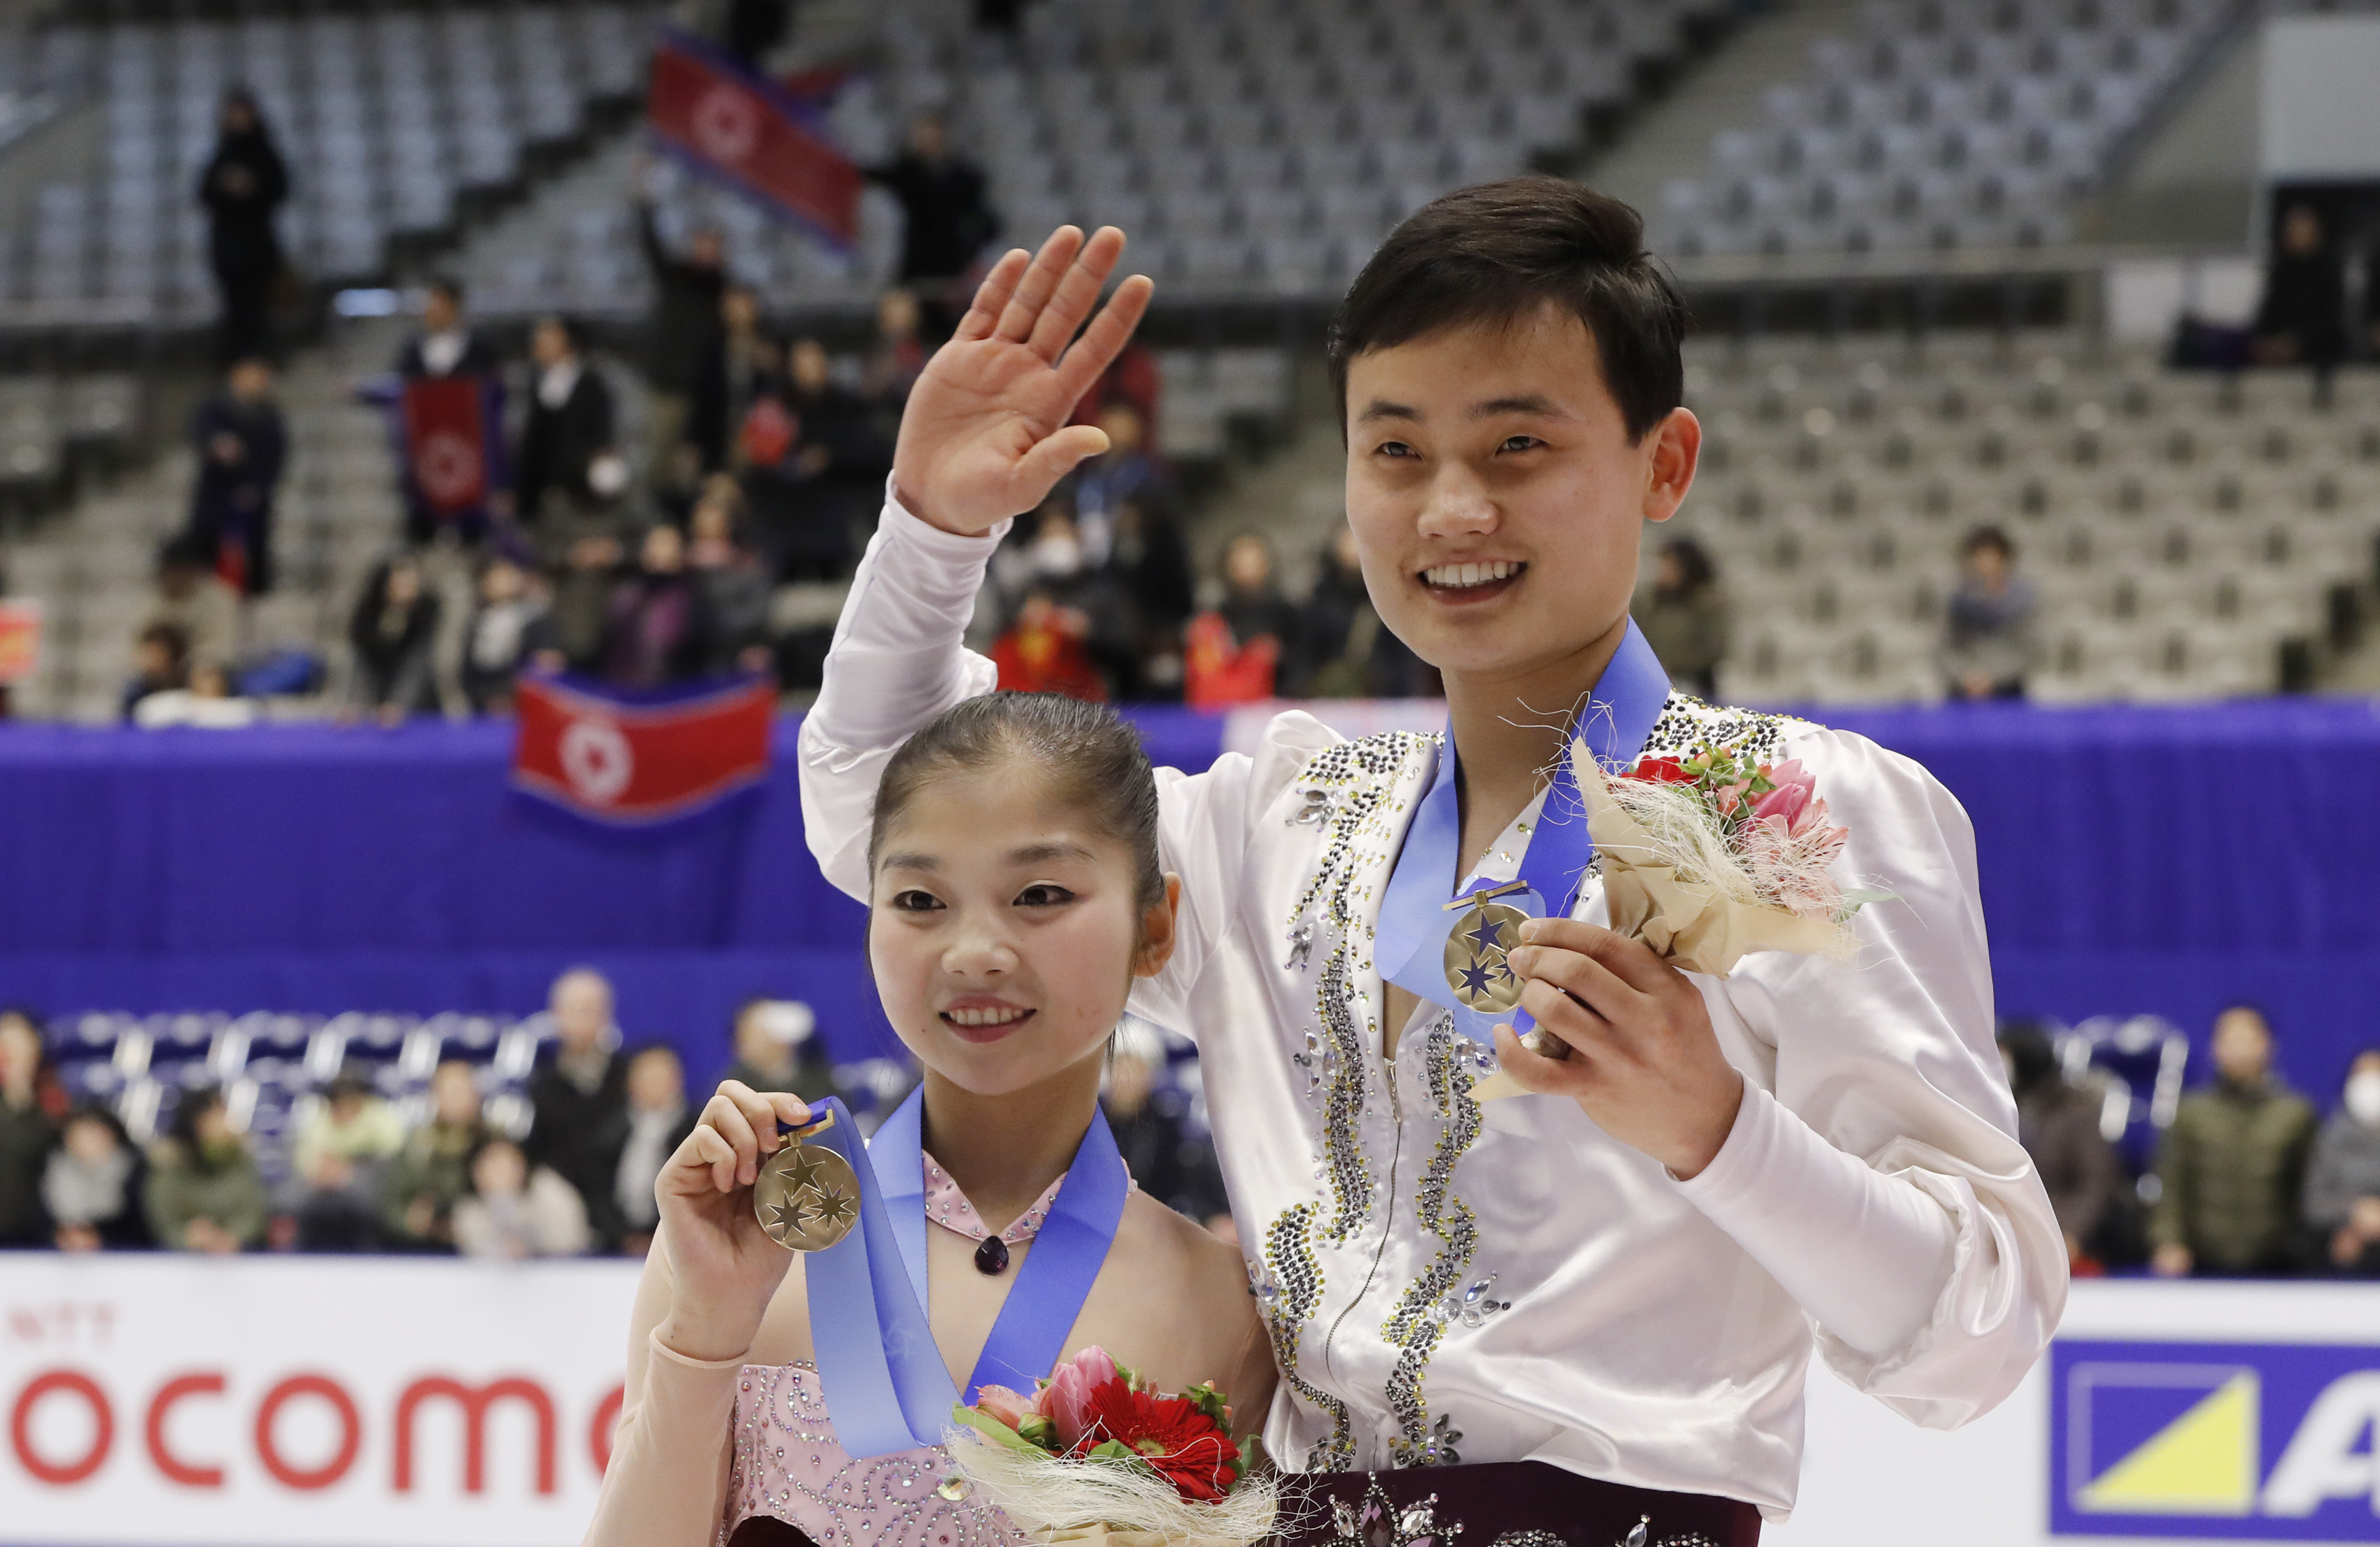 Bronze medalists Ryom Tae Ok and Kim Ju Sik of North Korea pose for photographers during the victory ceremony of the Pairs event of Figure Skating competition at Makomanai Indoor Skating Rink at the Asian Winter Games in Sapporo, northern Japan, Saturday, Feb. 25, 2017.